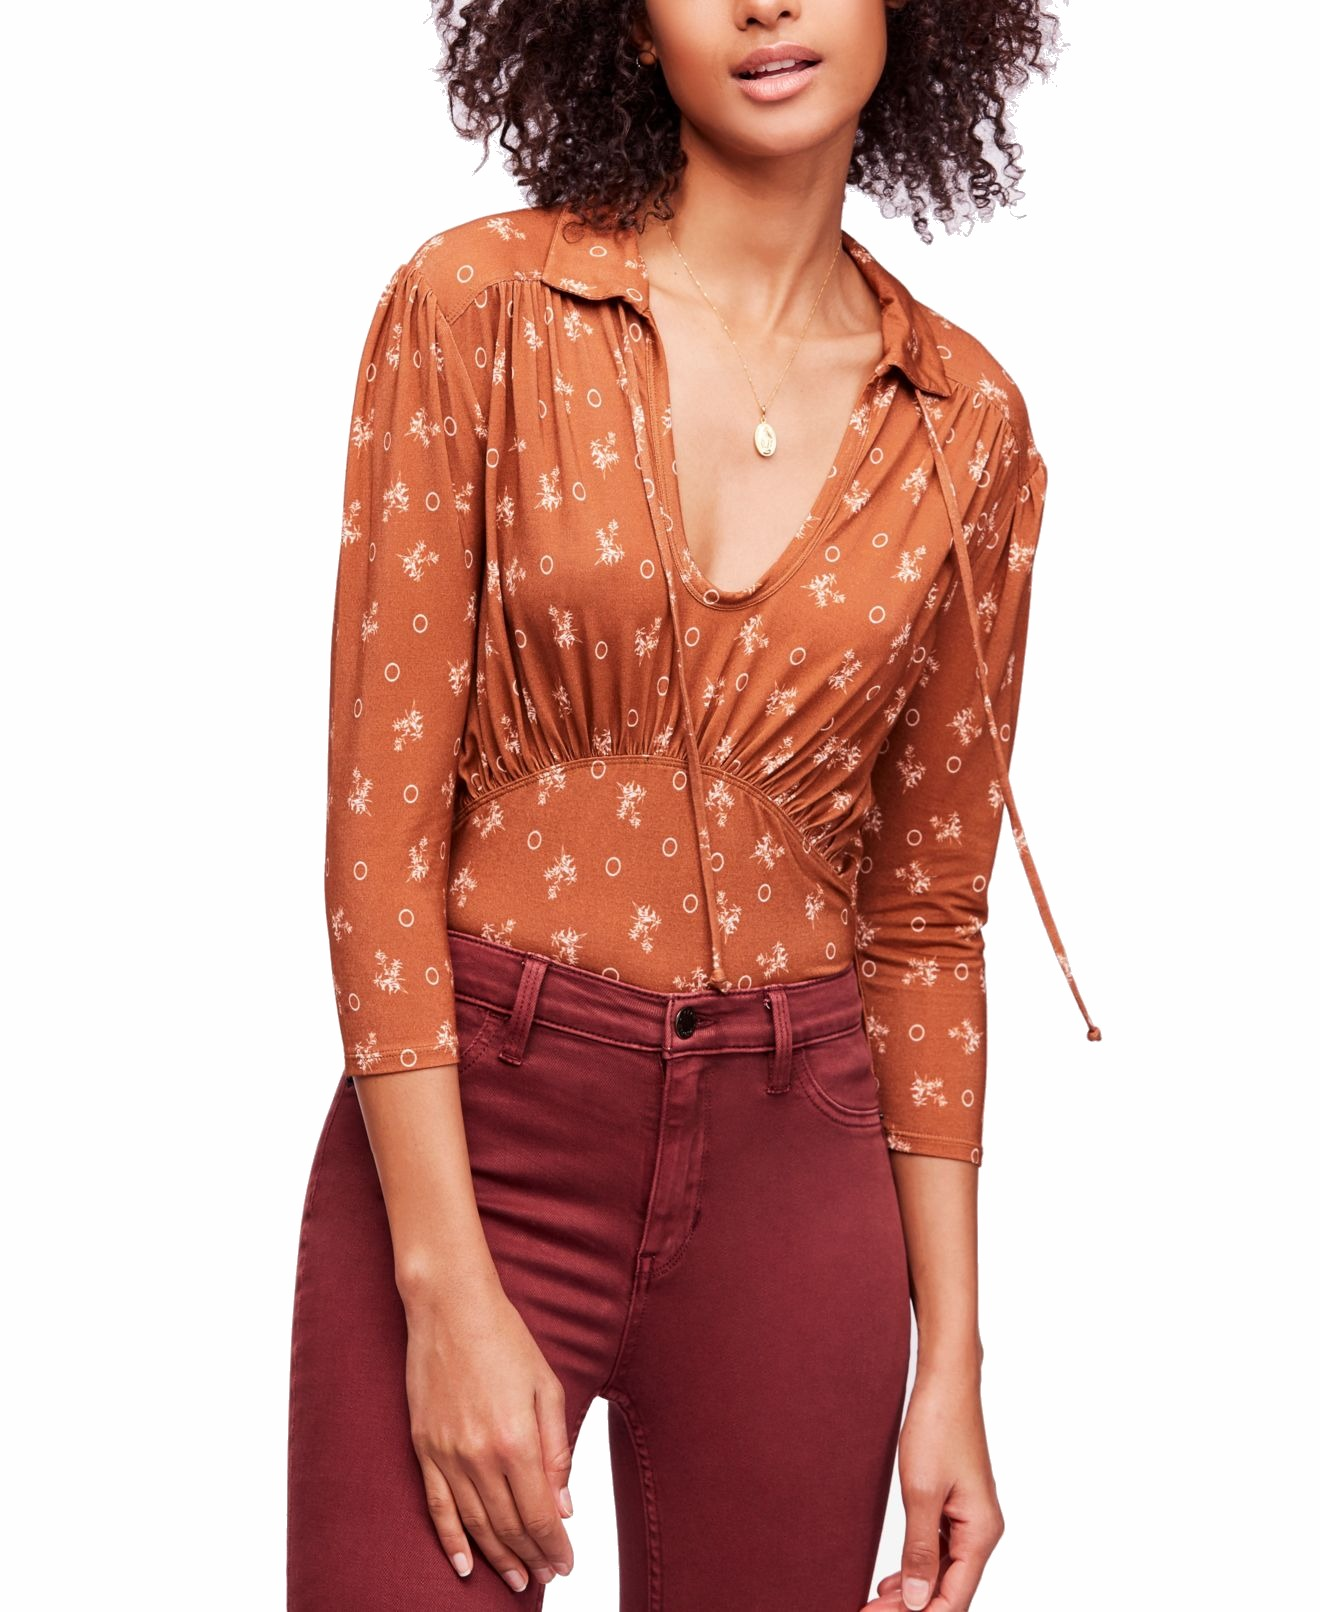 Free-People-Women-039-s-Blouse-Brown-Size-Small-S-Knit-Floral-Cutout